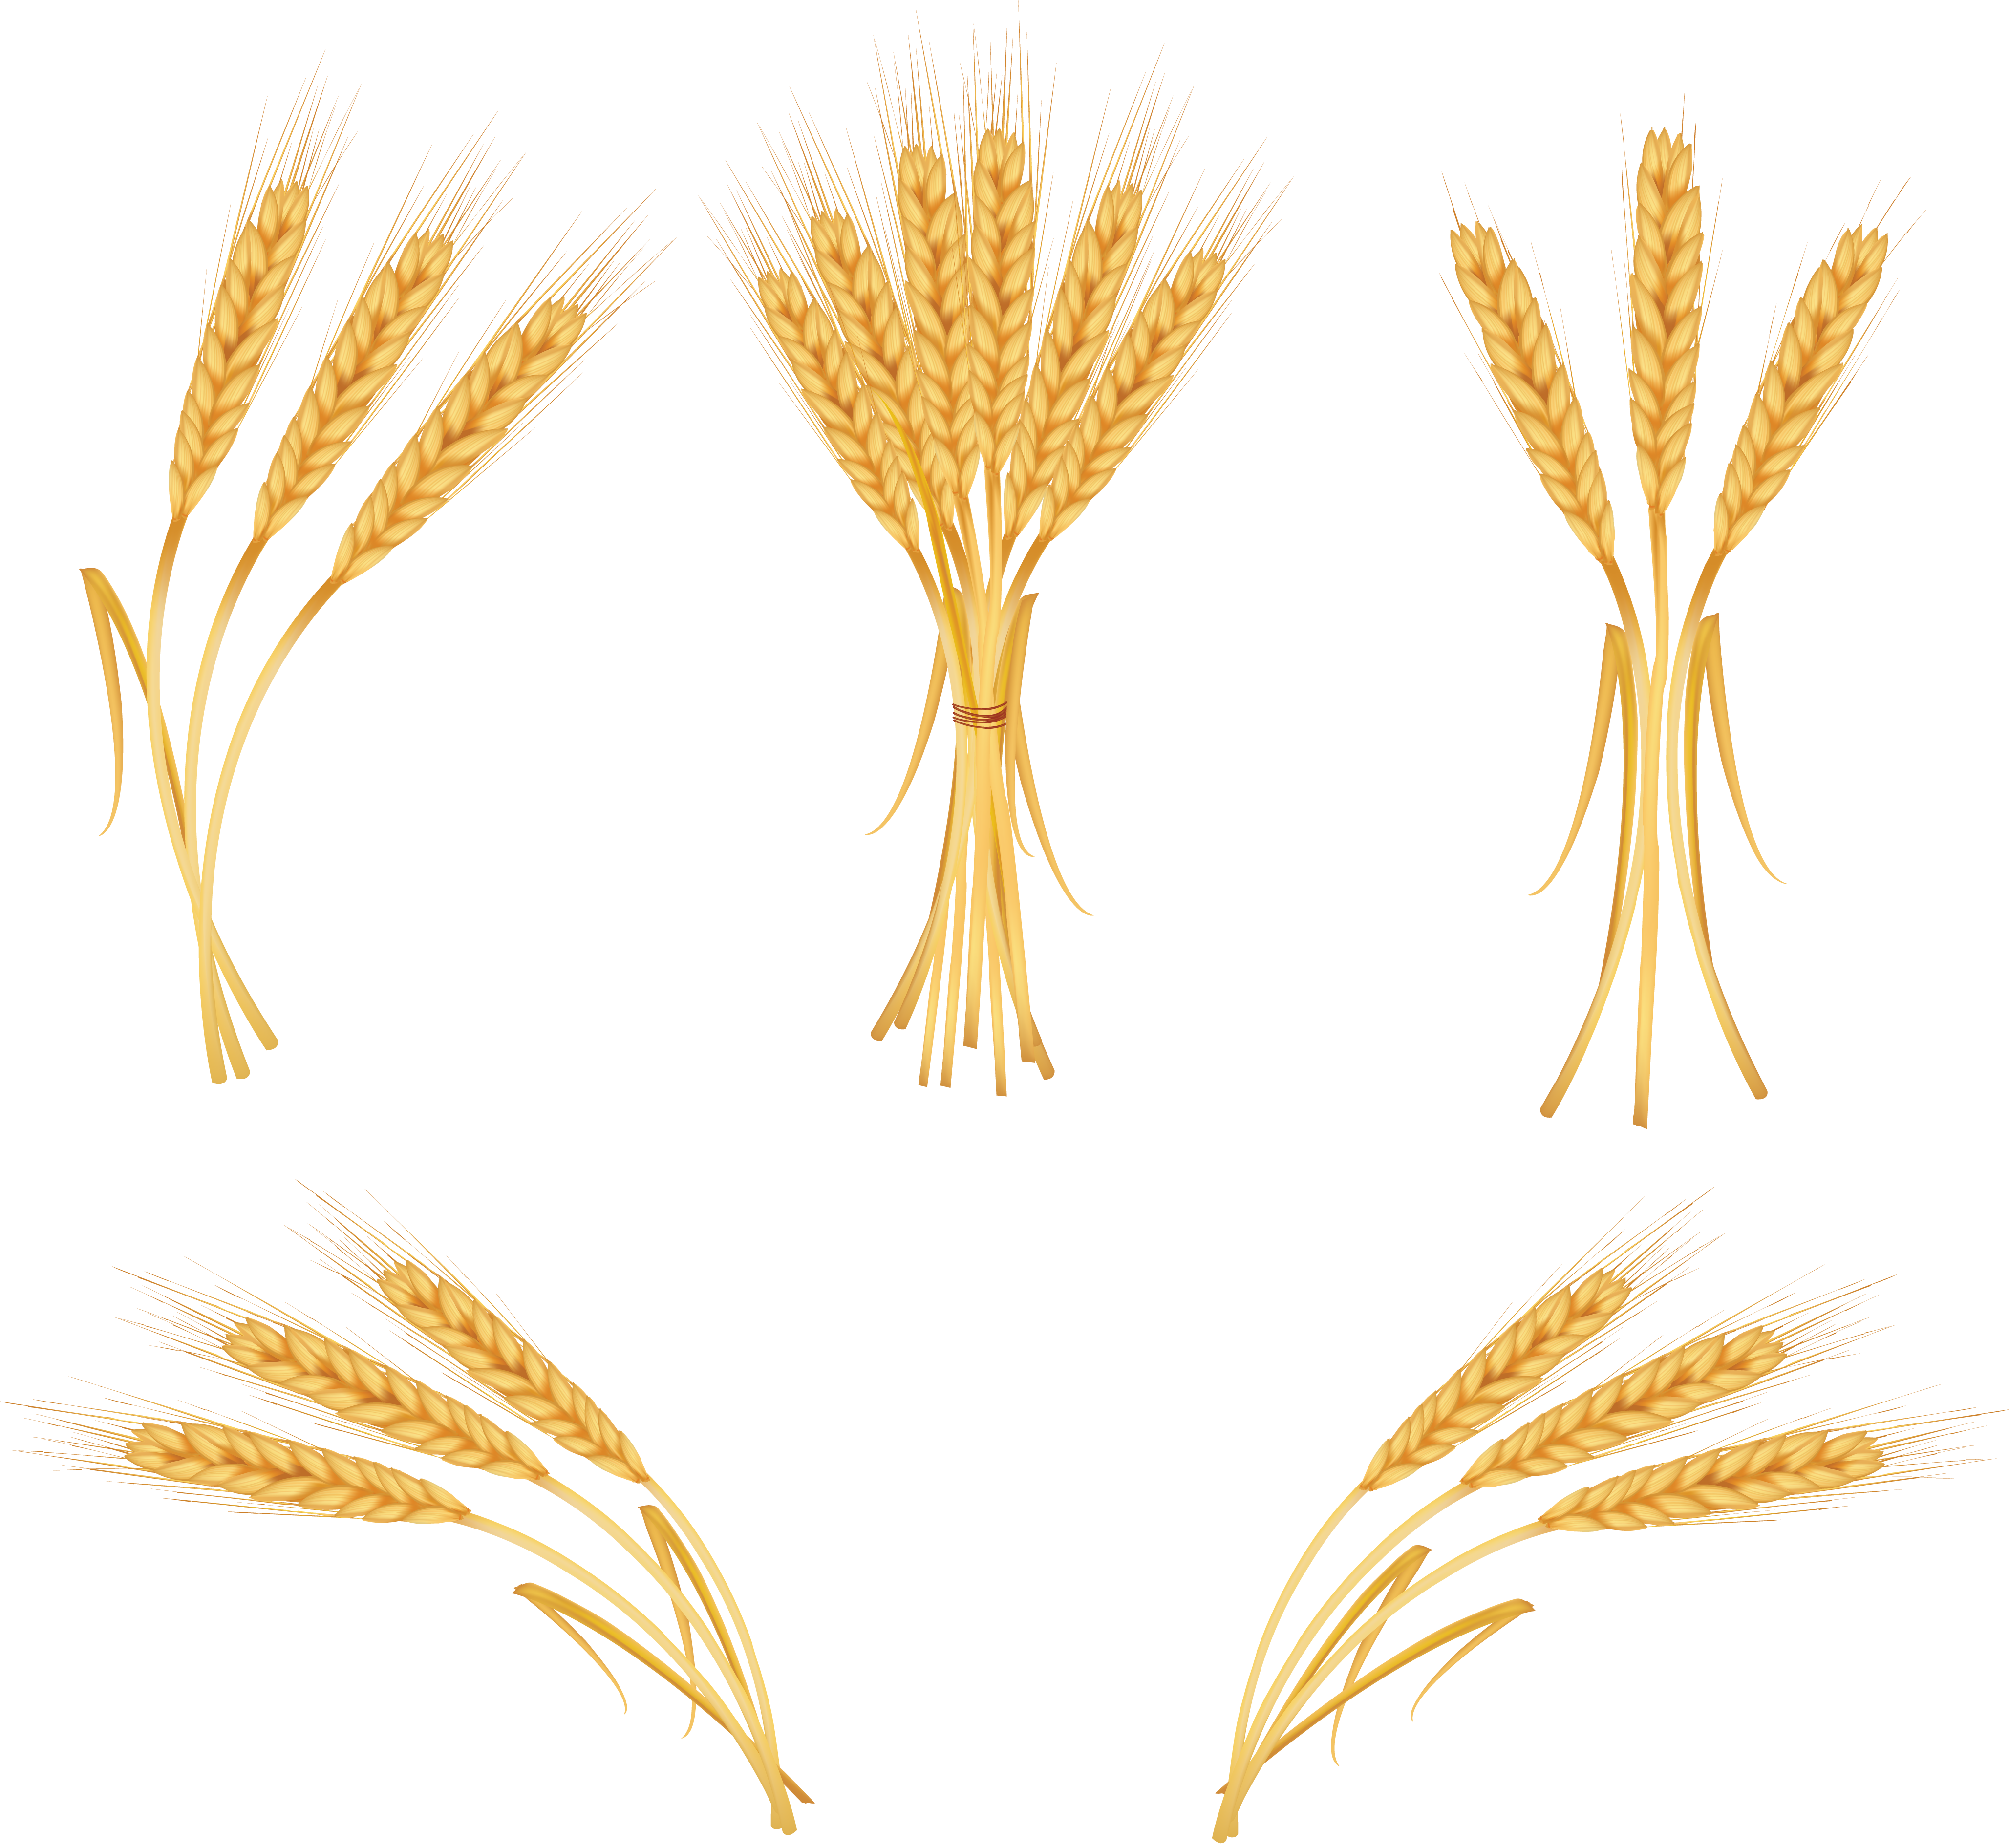 Wheat png images free. Grain clipart high fiber diet